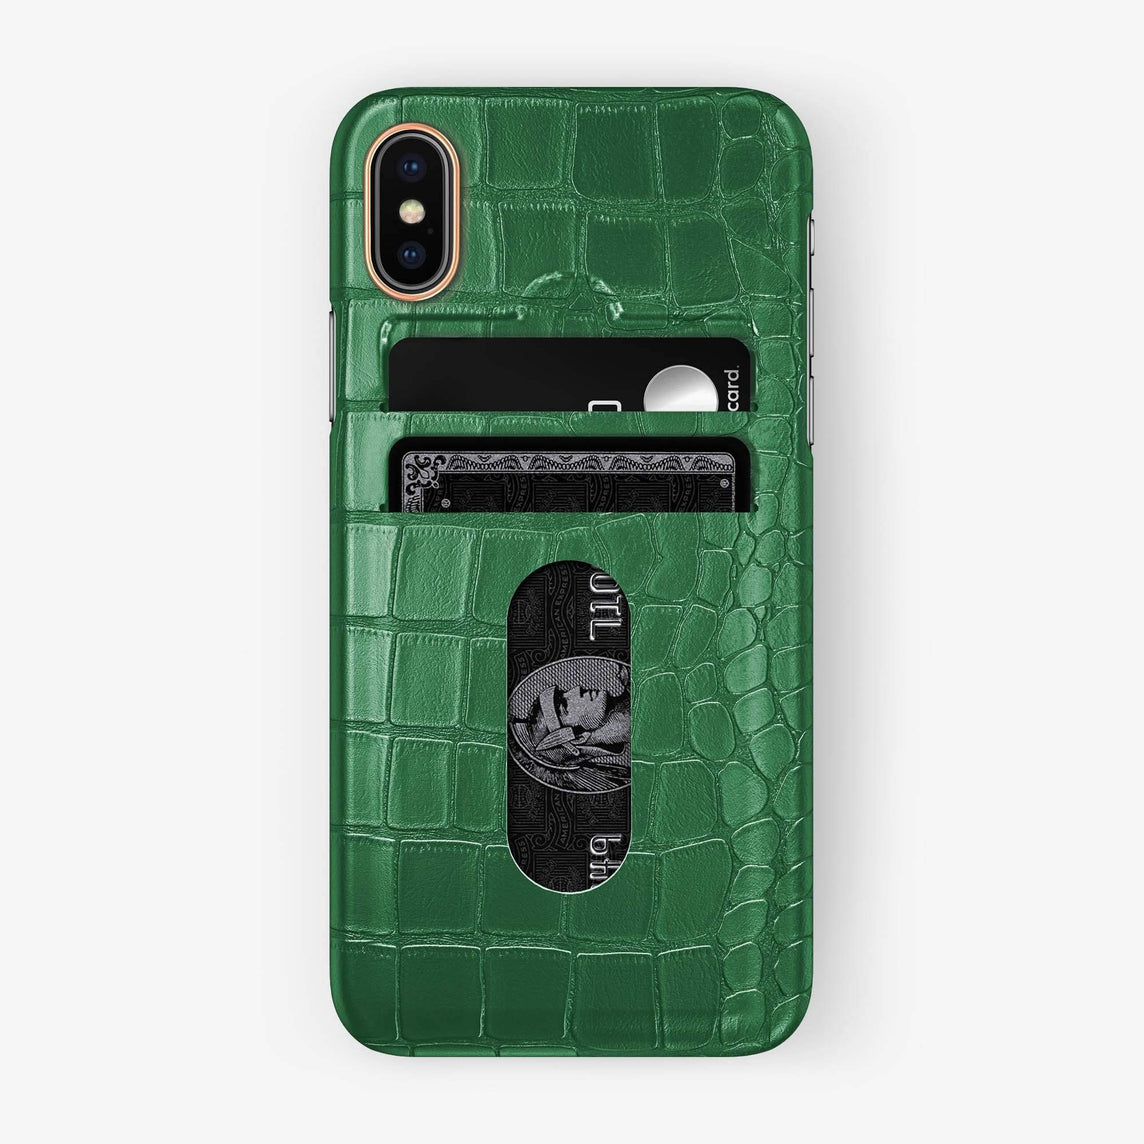 Alligator Card Holder Case iPhone Xs Max | Green - Rose Gold - Hadoro